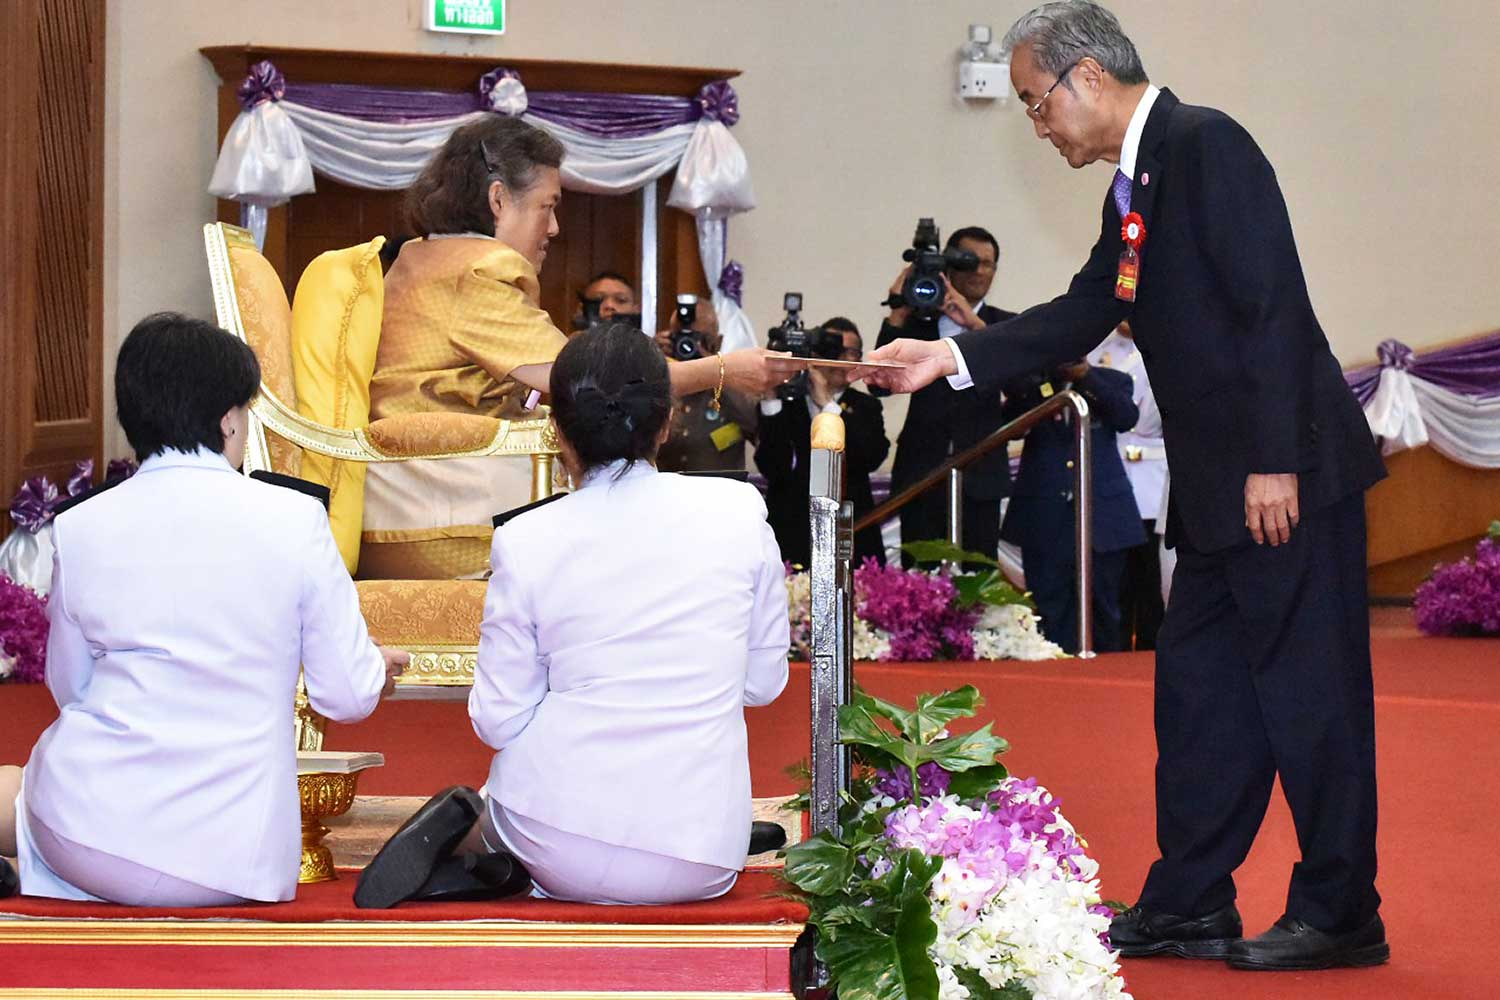 HRH Princess Maha Chakri Sirindhorn presents the Outstanding Technologist Award 2019 to Professor Dr Pairash Thajchayapong.